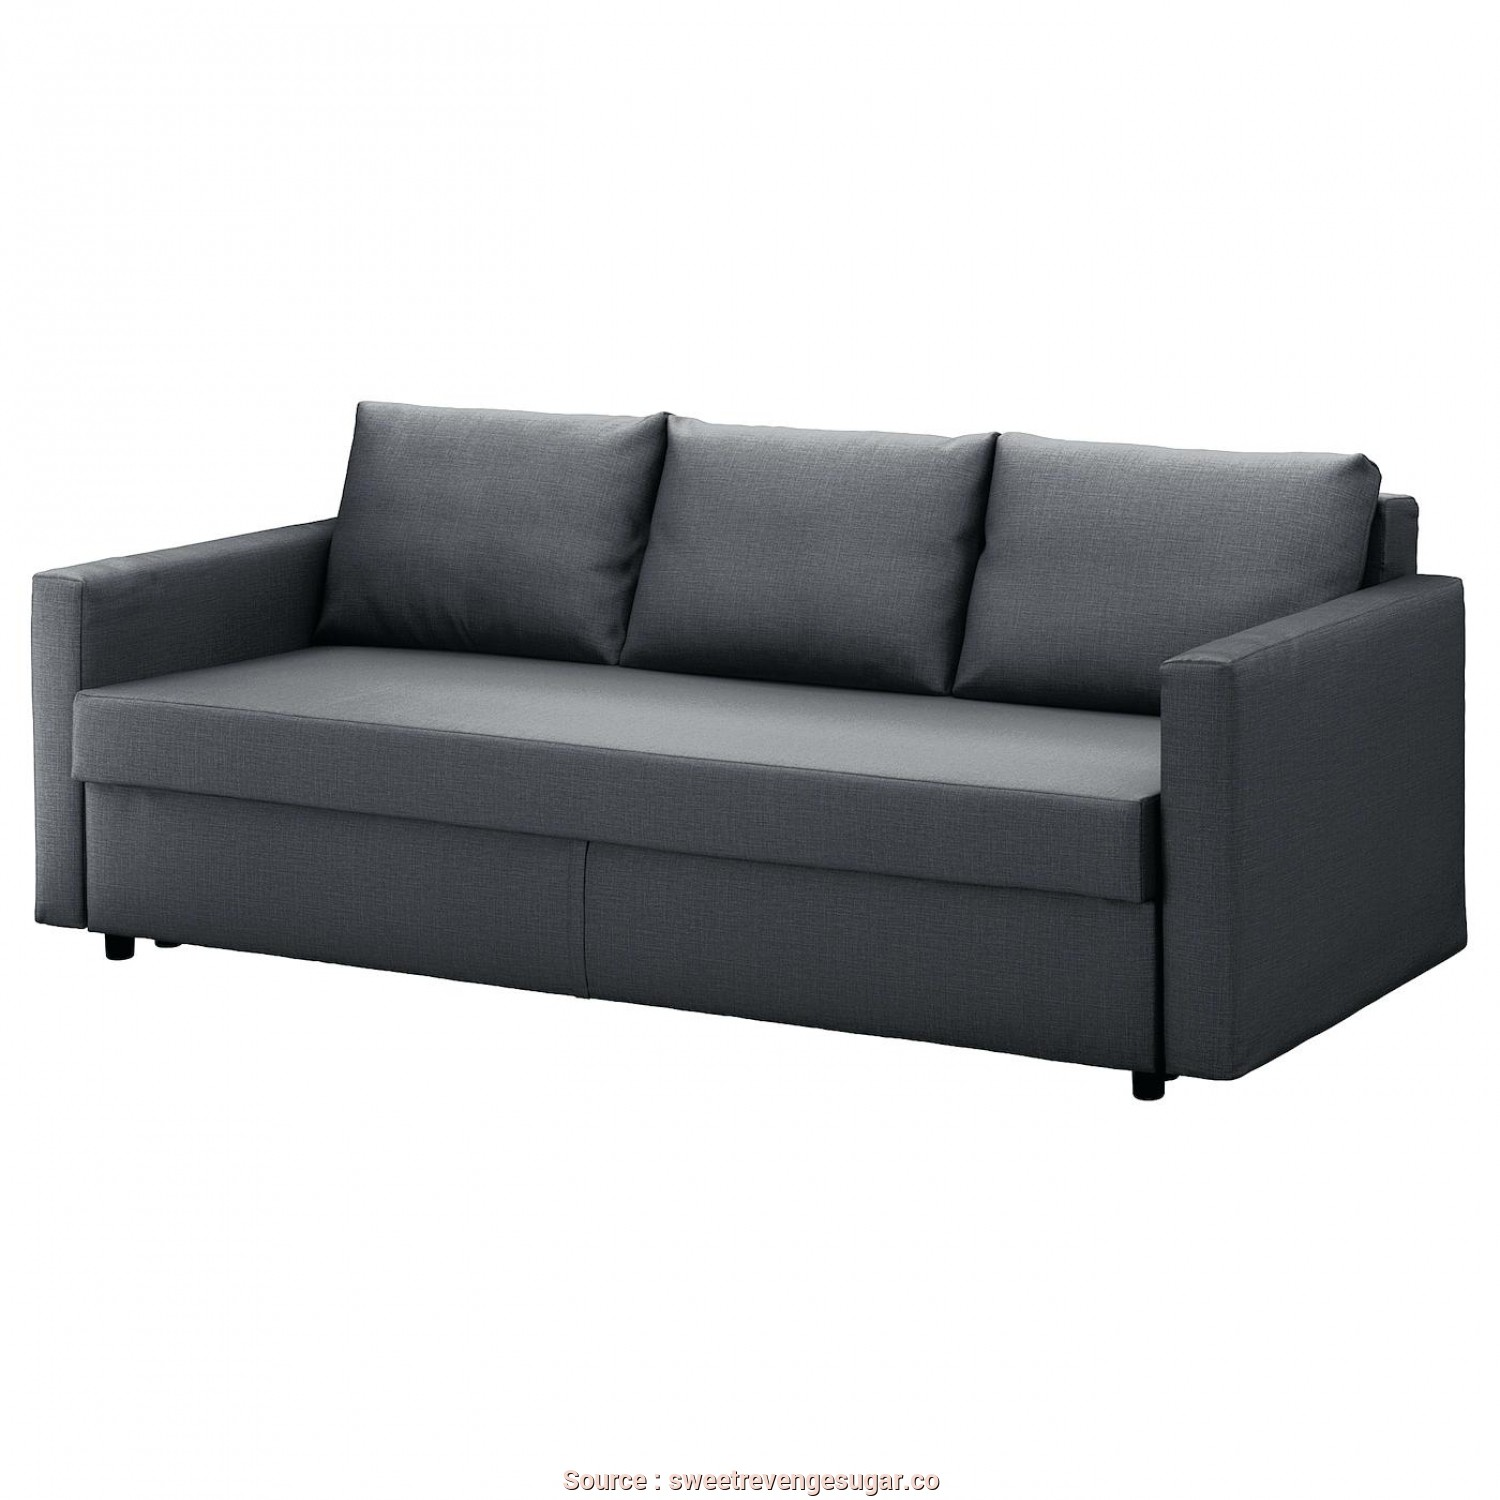 Ikea Backabro Sofa, Assembly, Freddo Ikea Sofa, Sofa, Ikea Sofa, Friheten Review . Ikea Sofa Bed